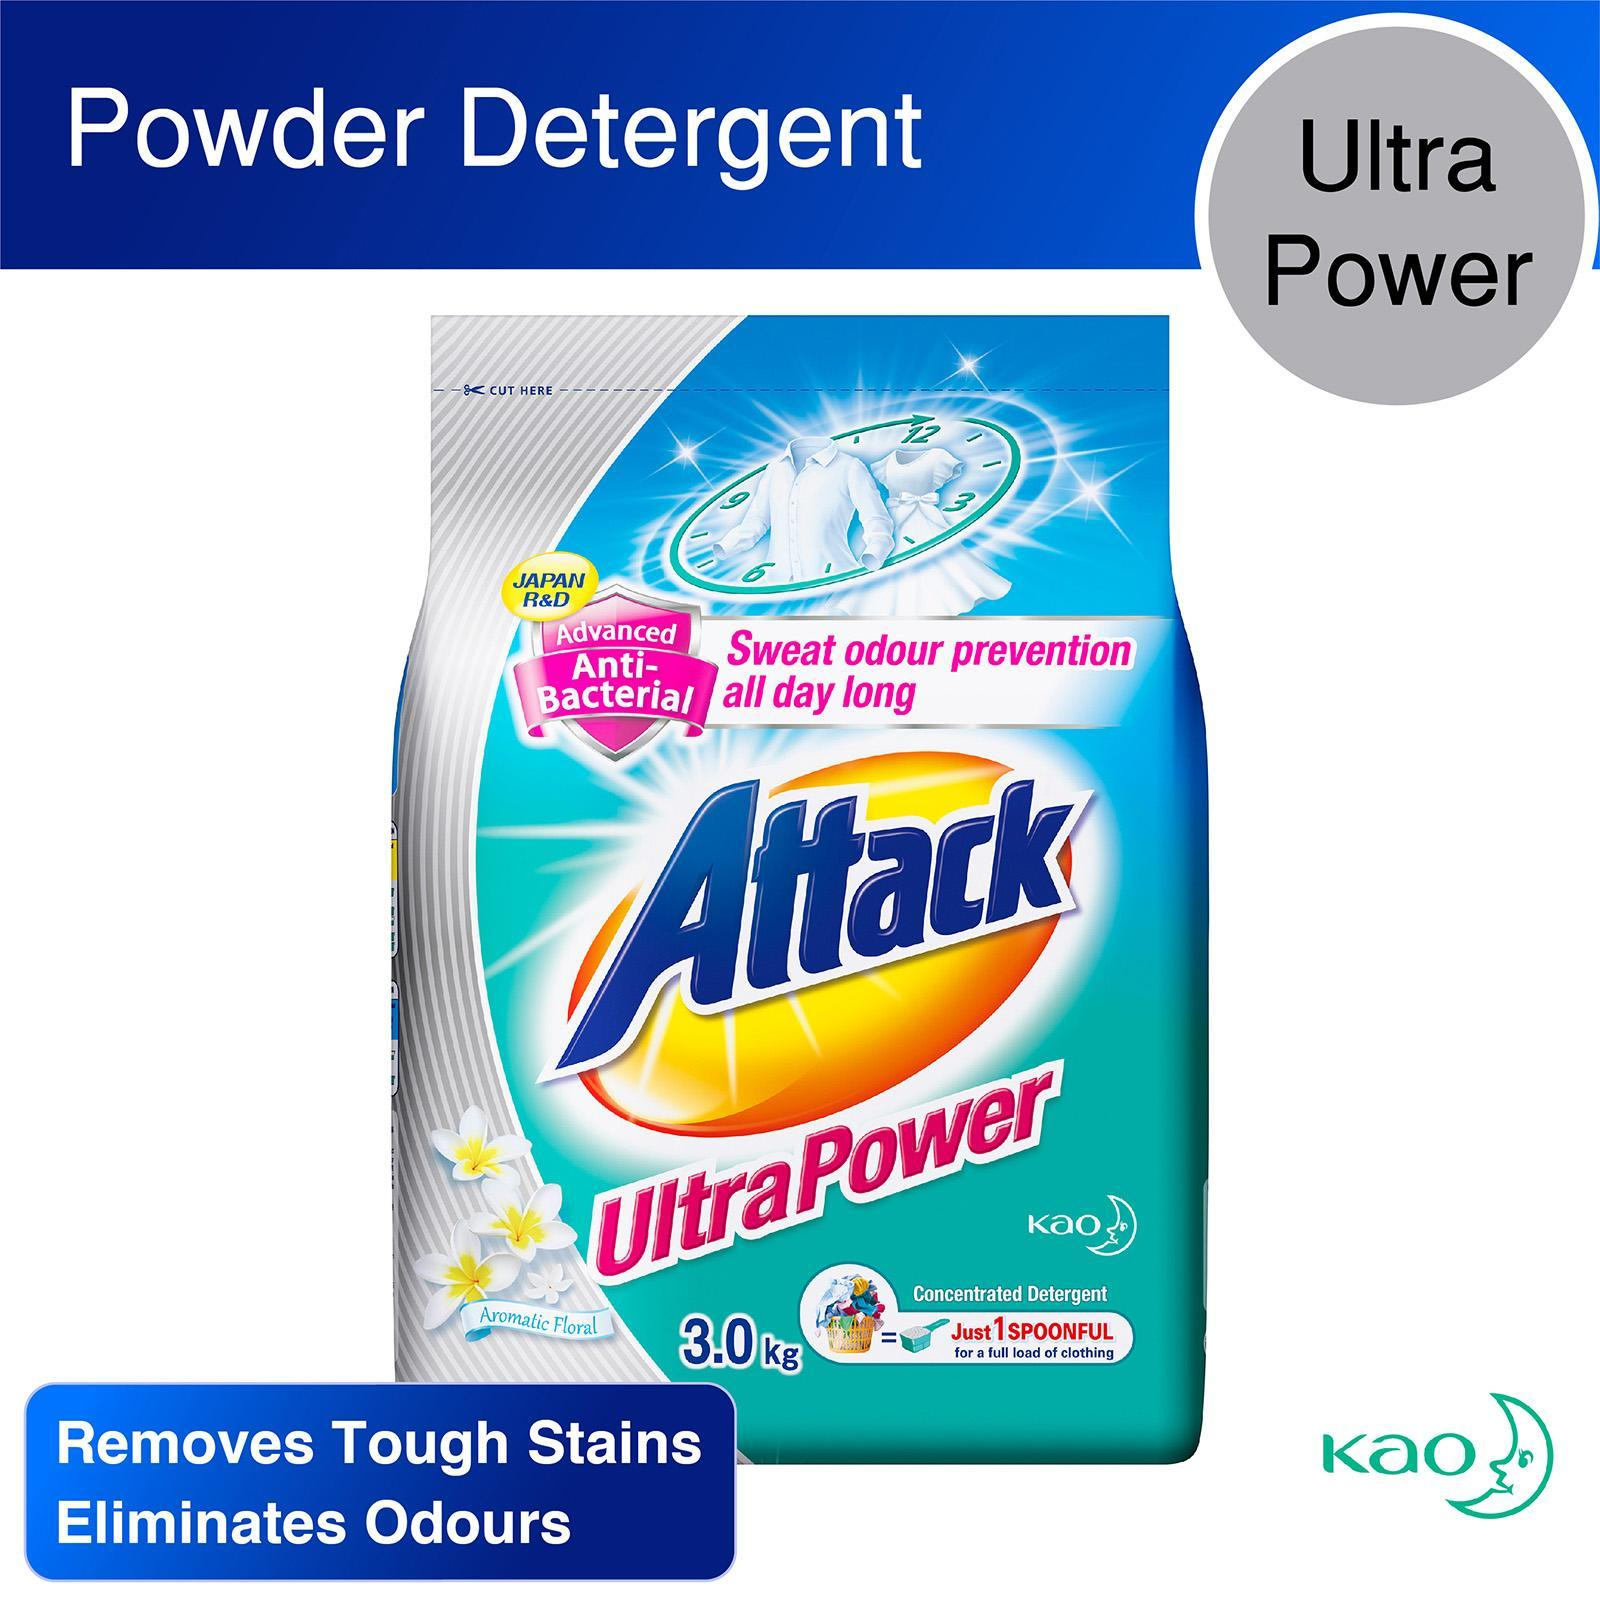 Attack Enzyme Power Powder Detergent 3KG